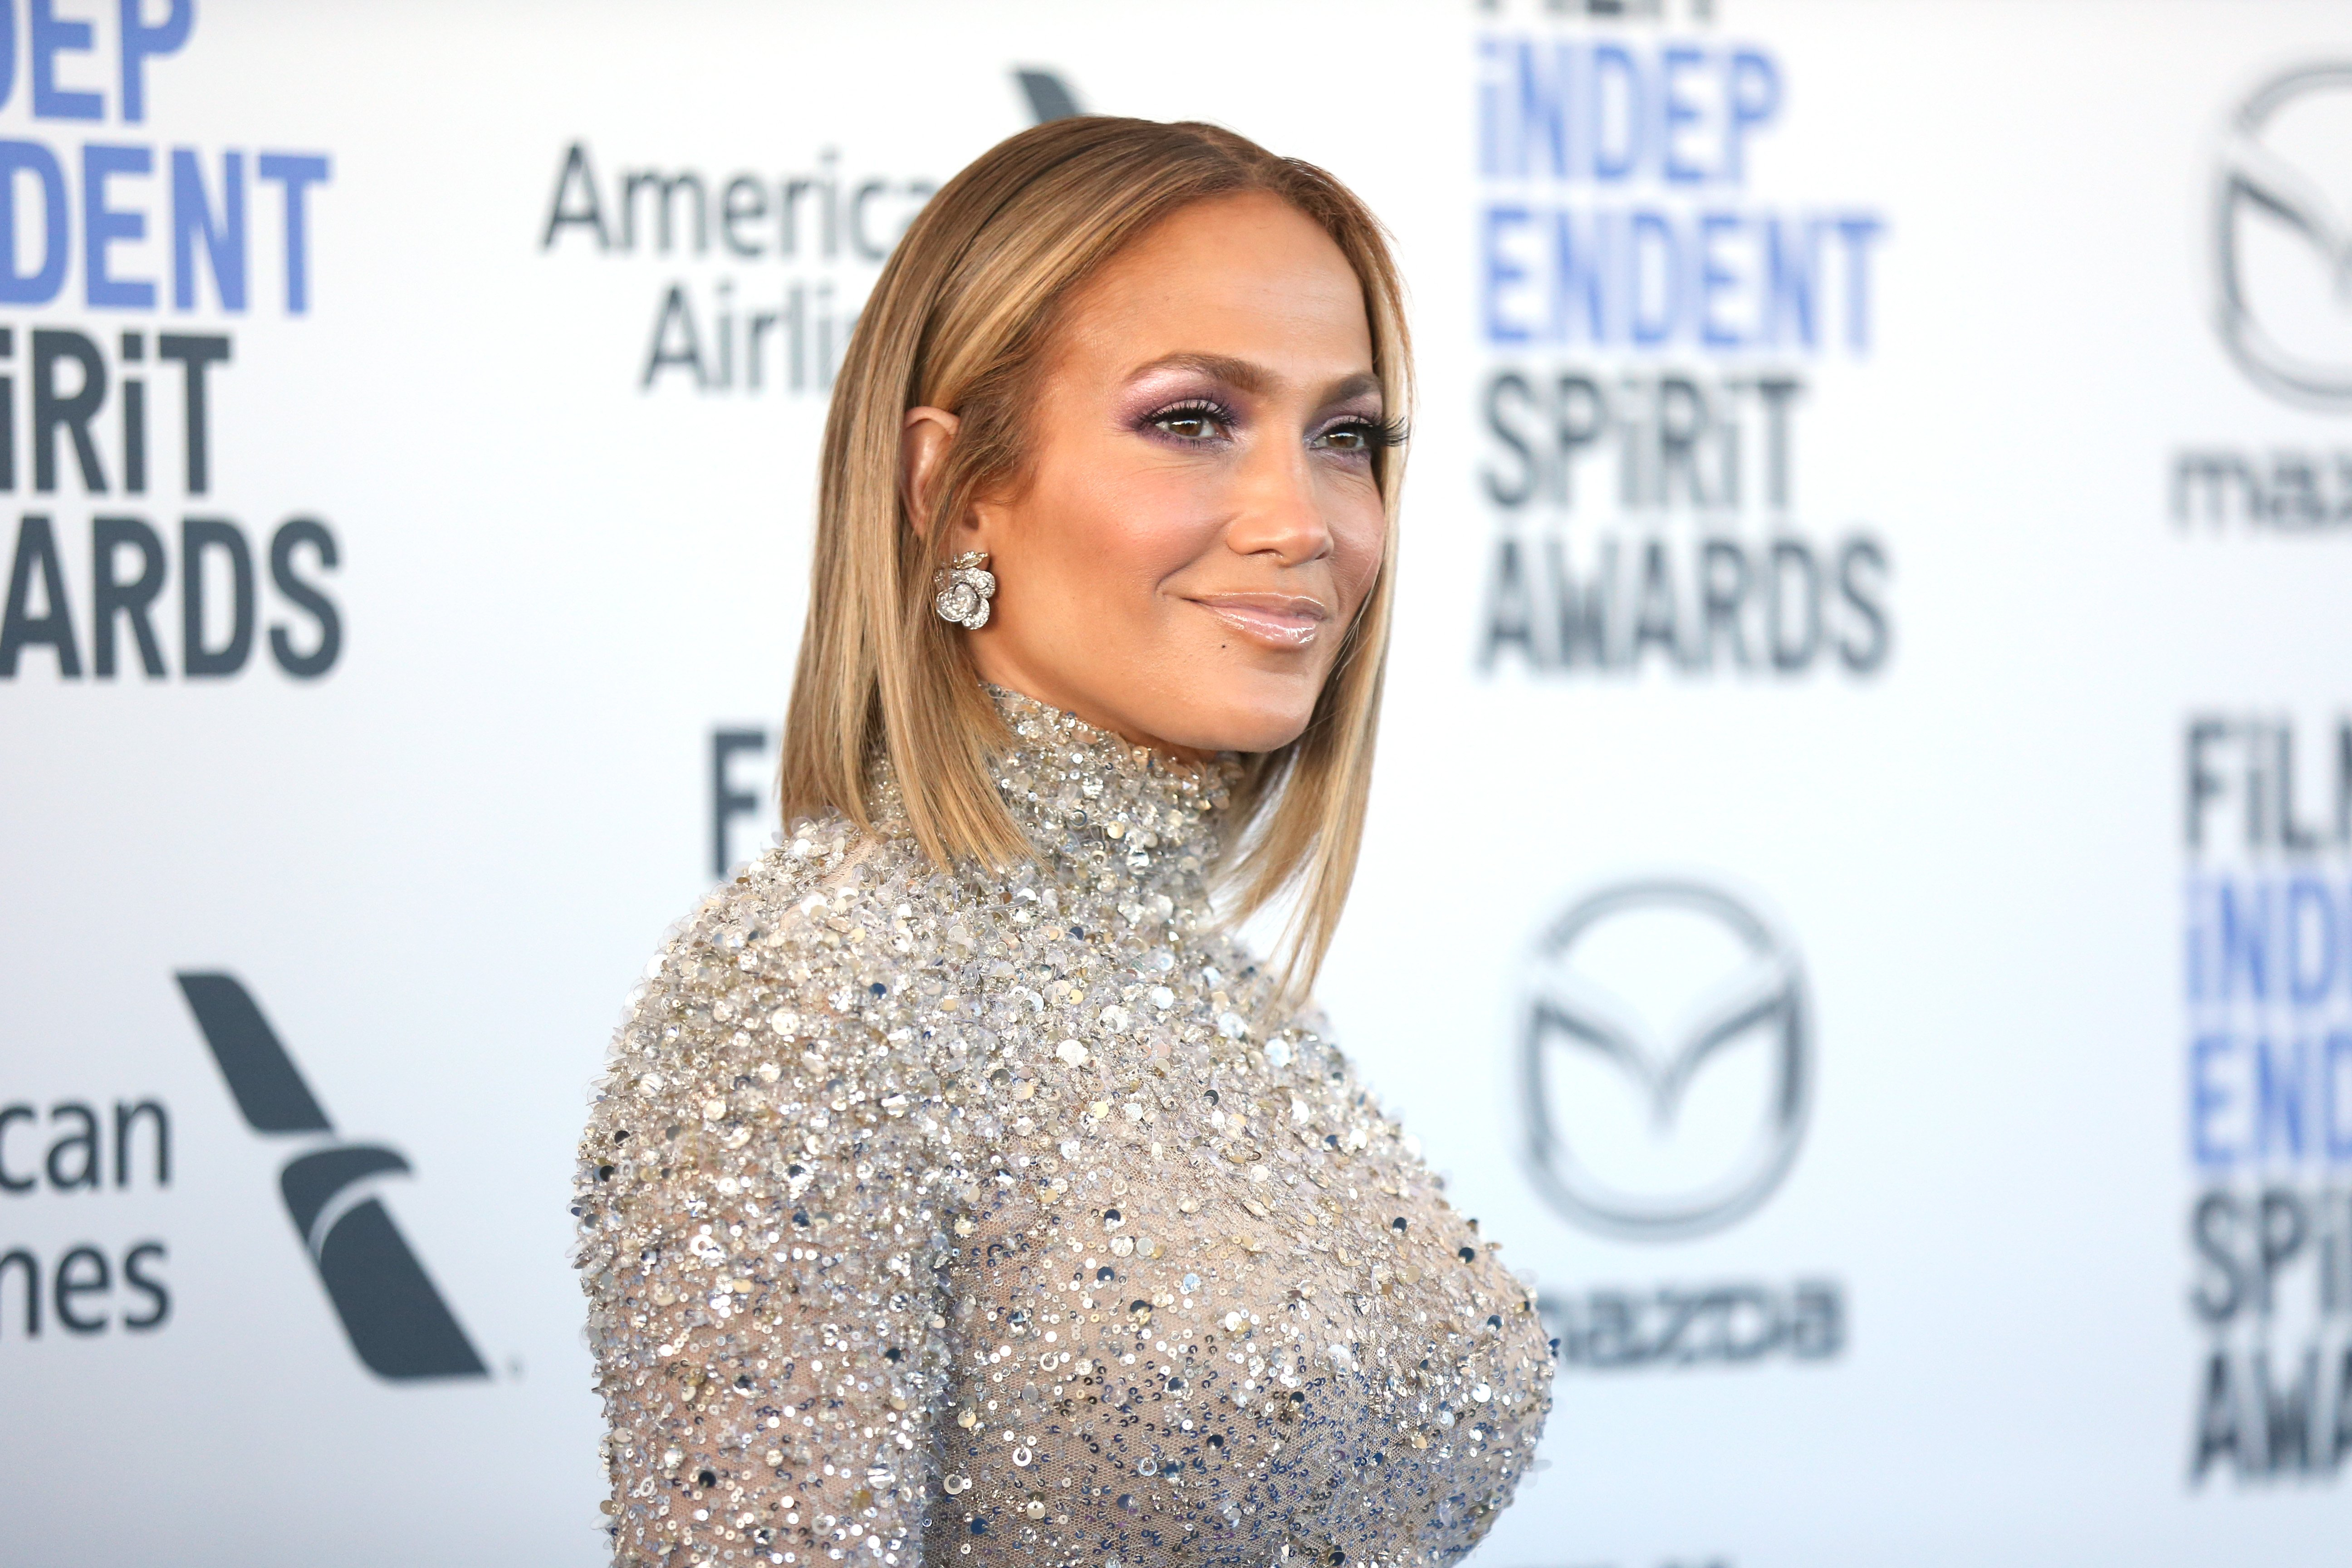 Jennifer Lopez pictured at the 2020 Film Independent Spirit Awards on February 08, 2020 in Santa Monica, California. | Source: Getty Images